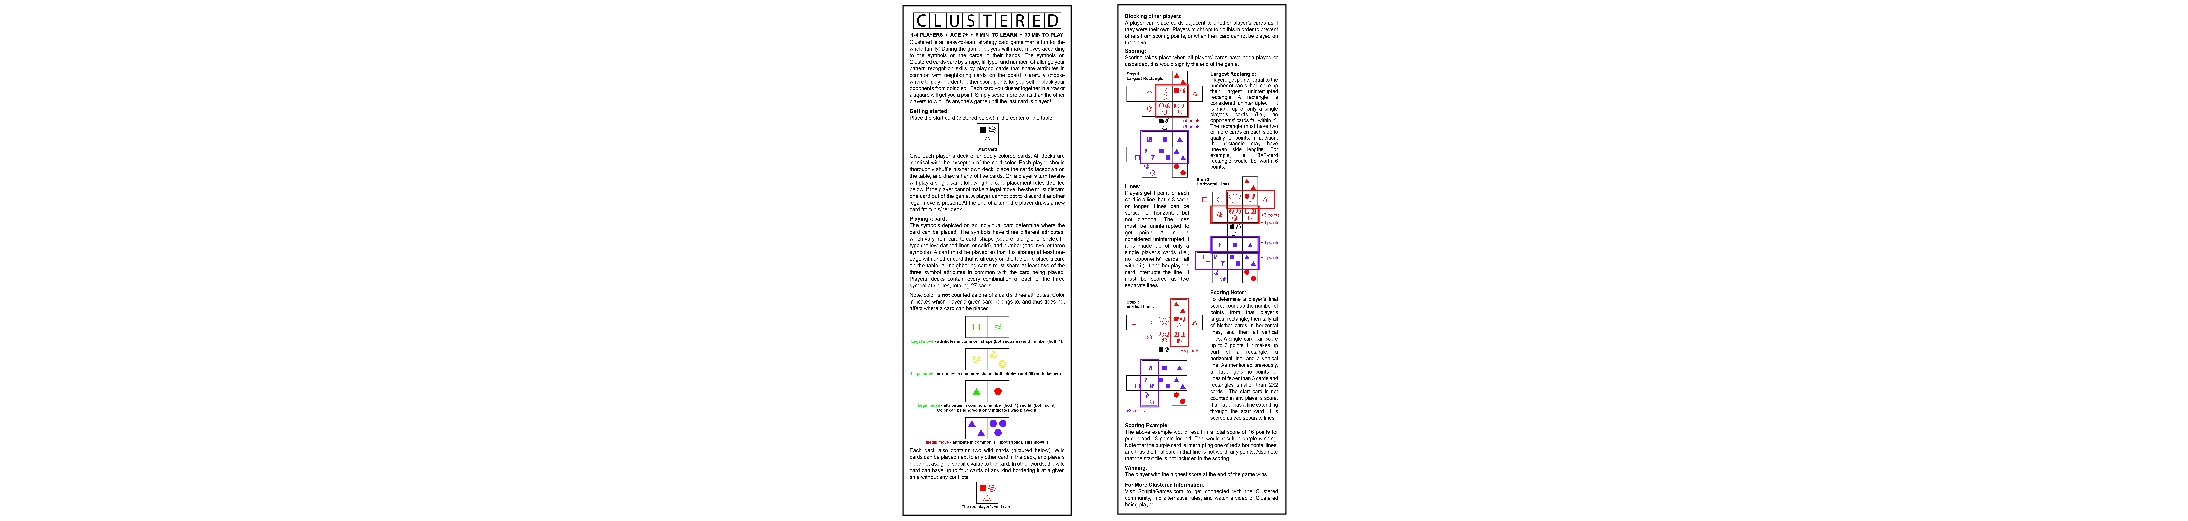 Clustered-Instructions.pdf